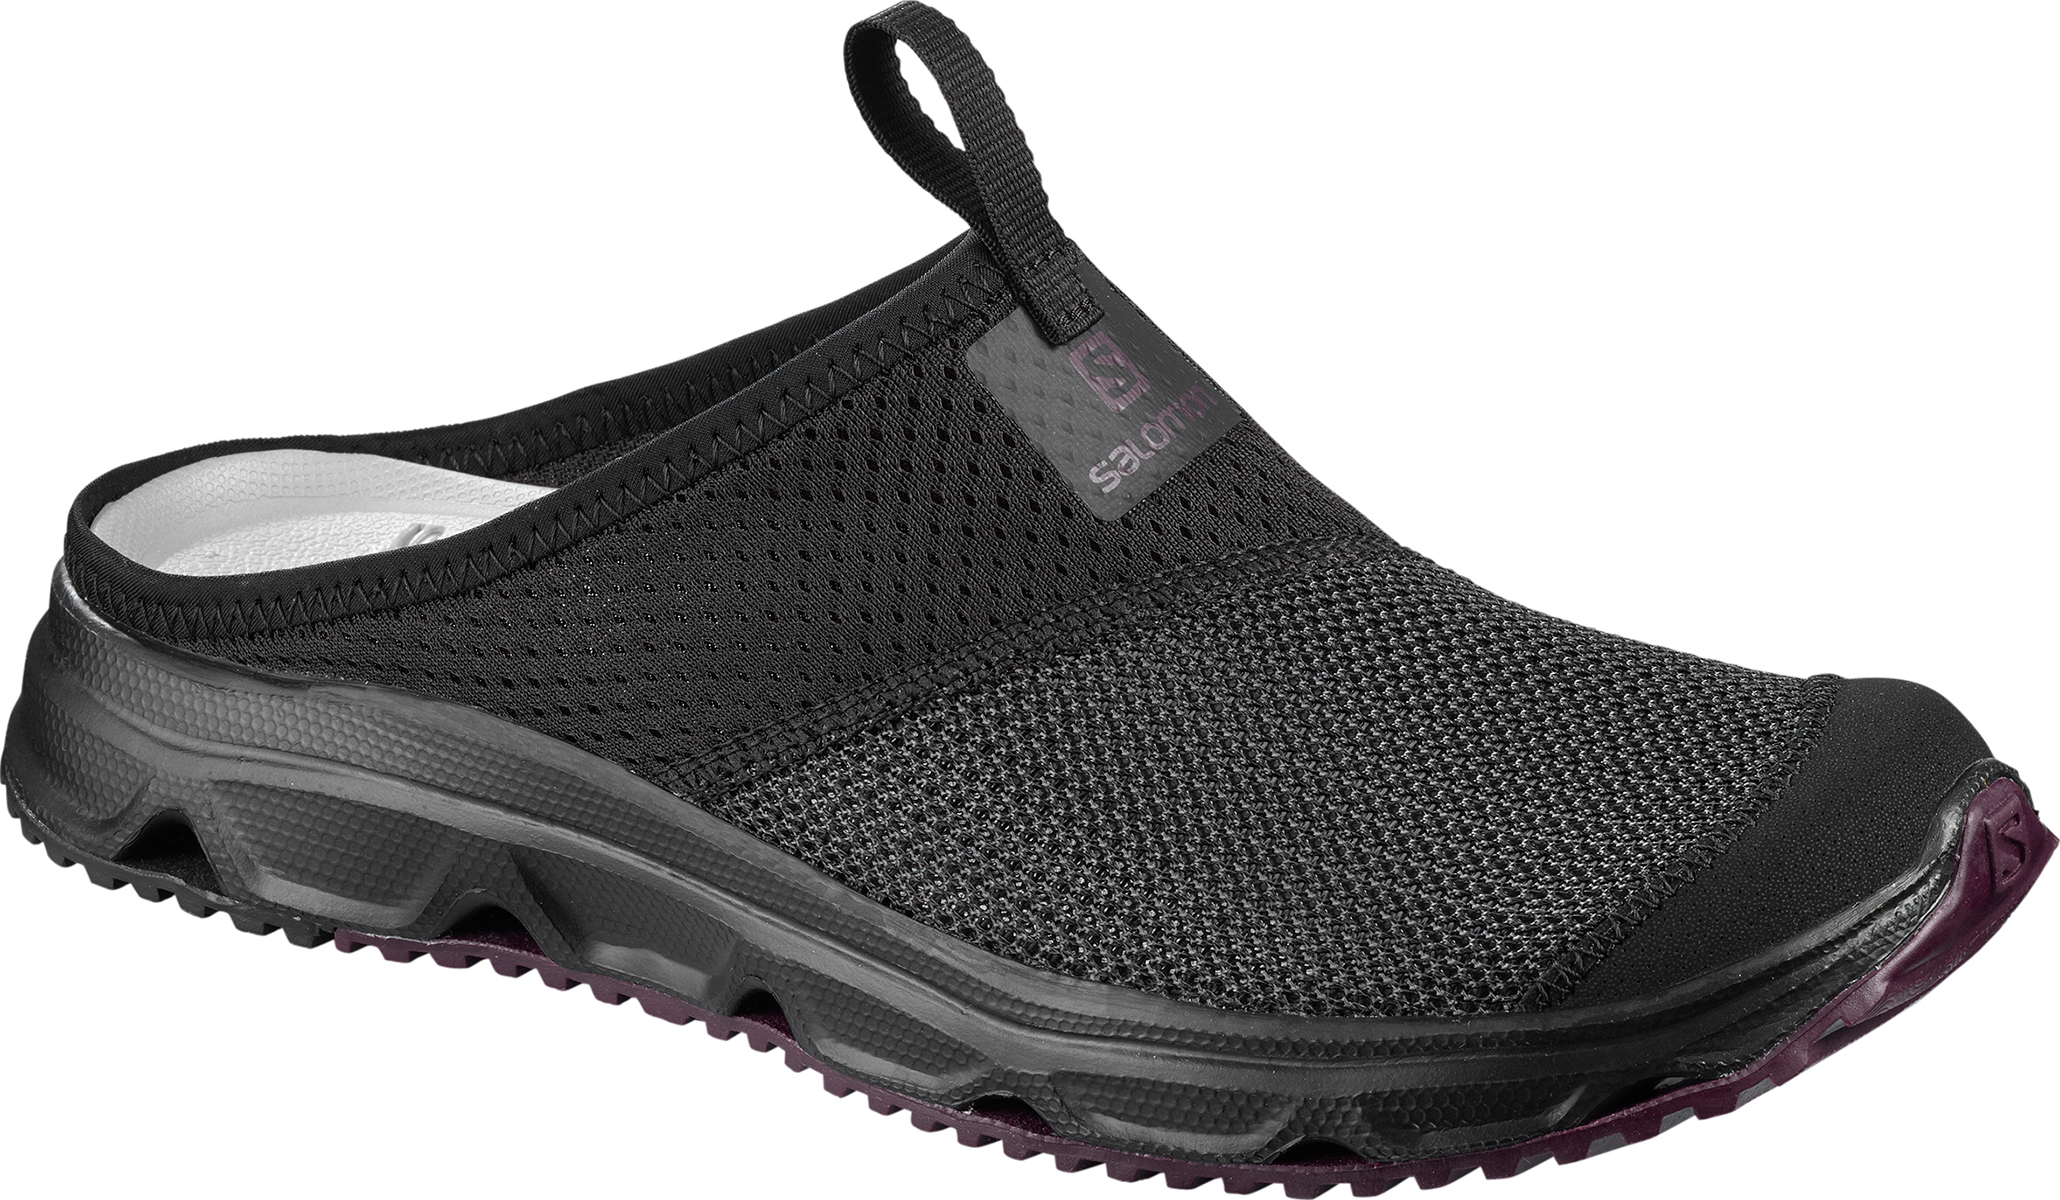 Salomon Women's RX Slide 4.0 Sandal